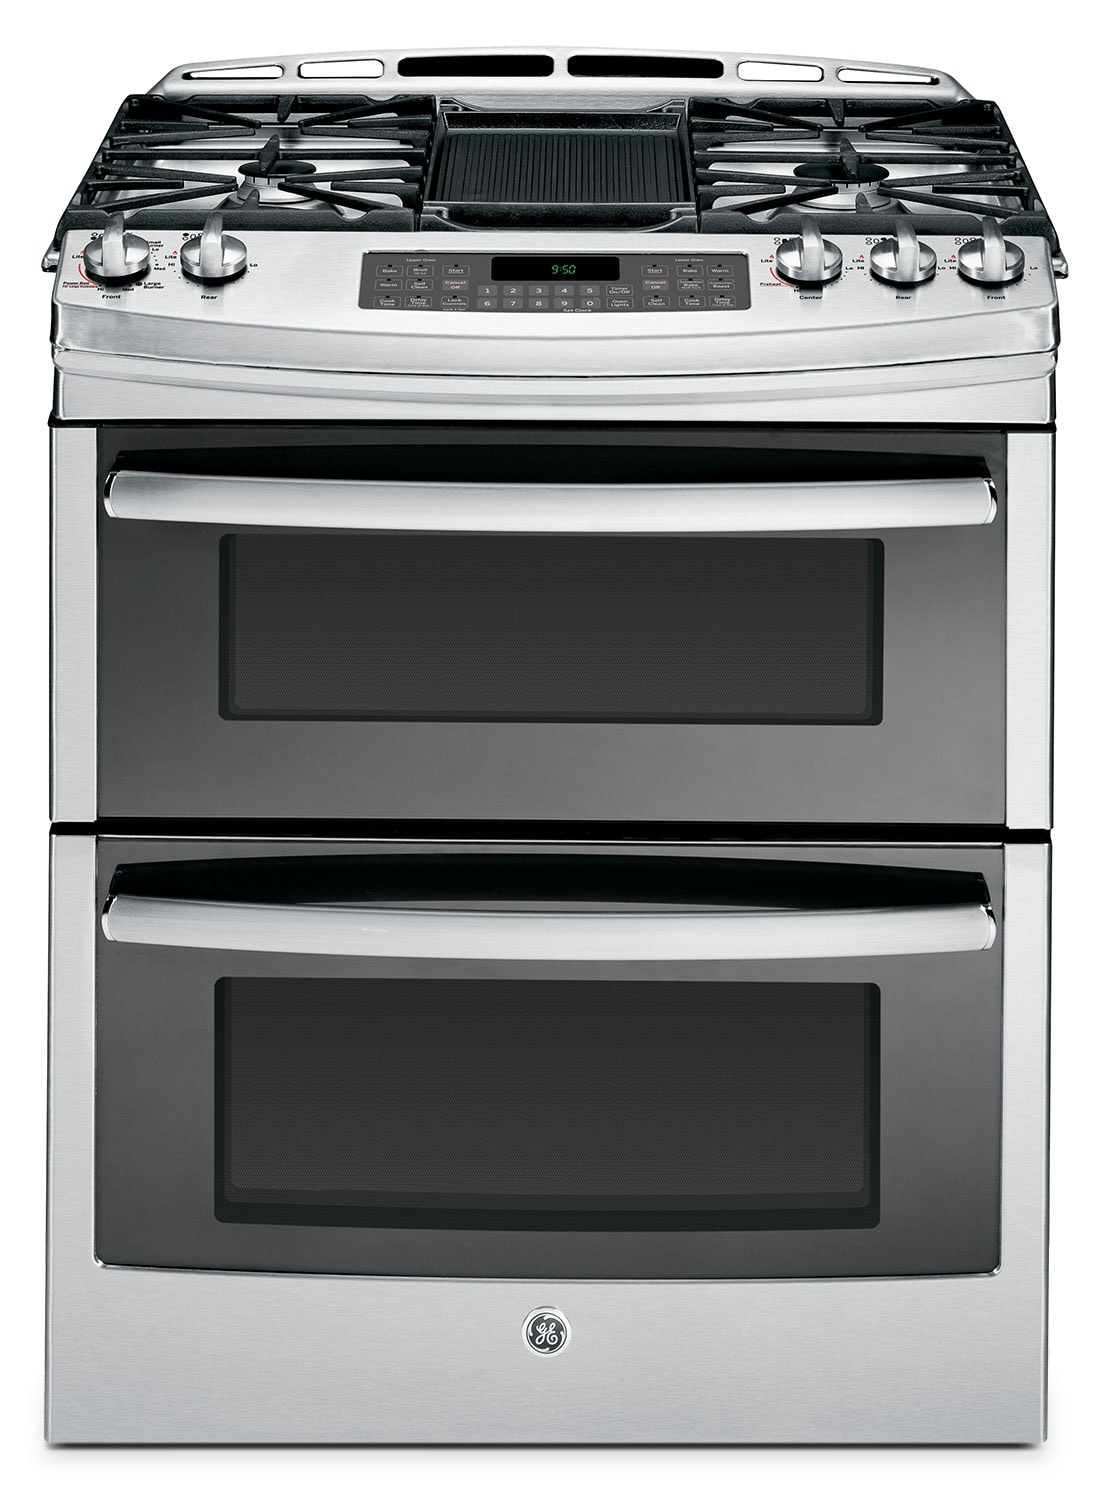 Cooking Products - GE Stainless Steel Slide-In Gas Range (6.8 Cu. Ft.) - PCGS950SEFSS